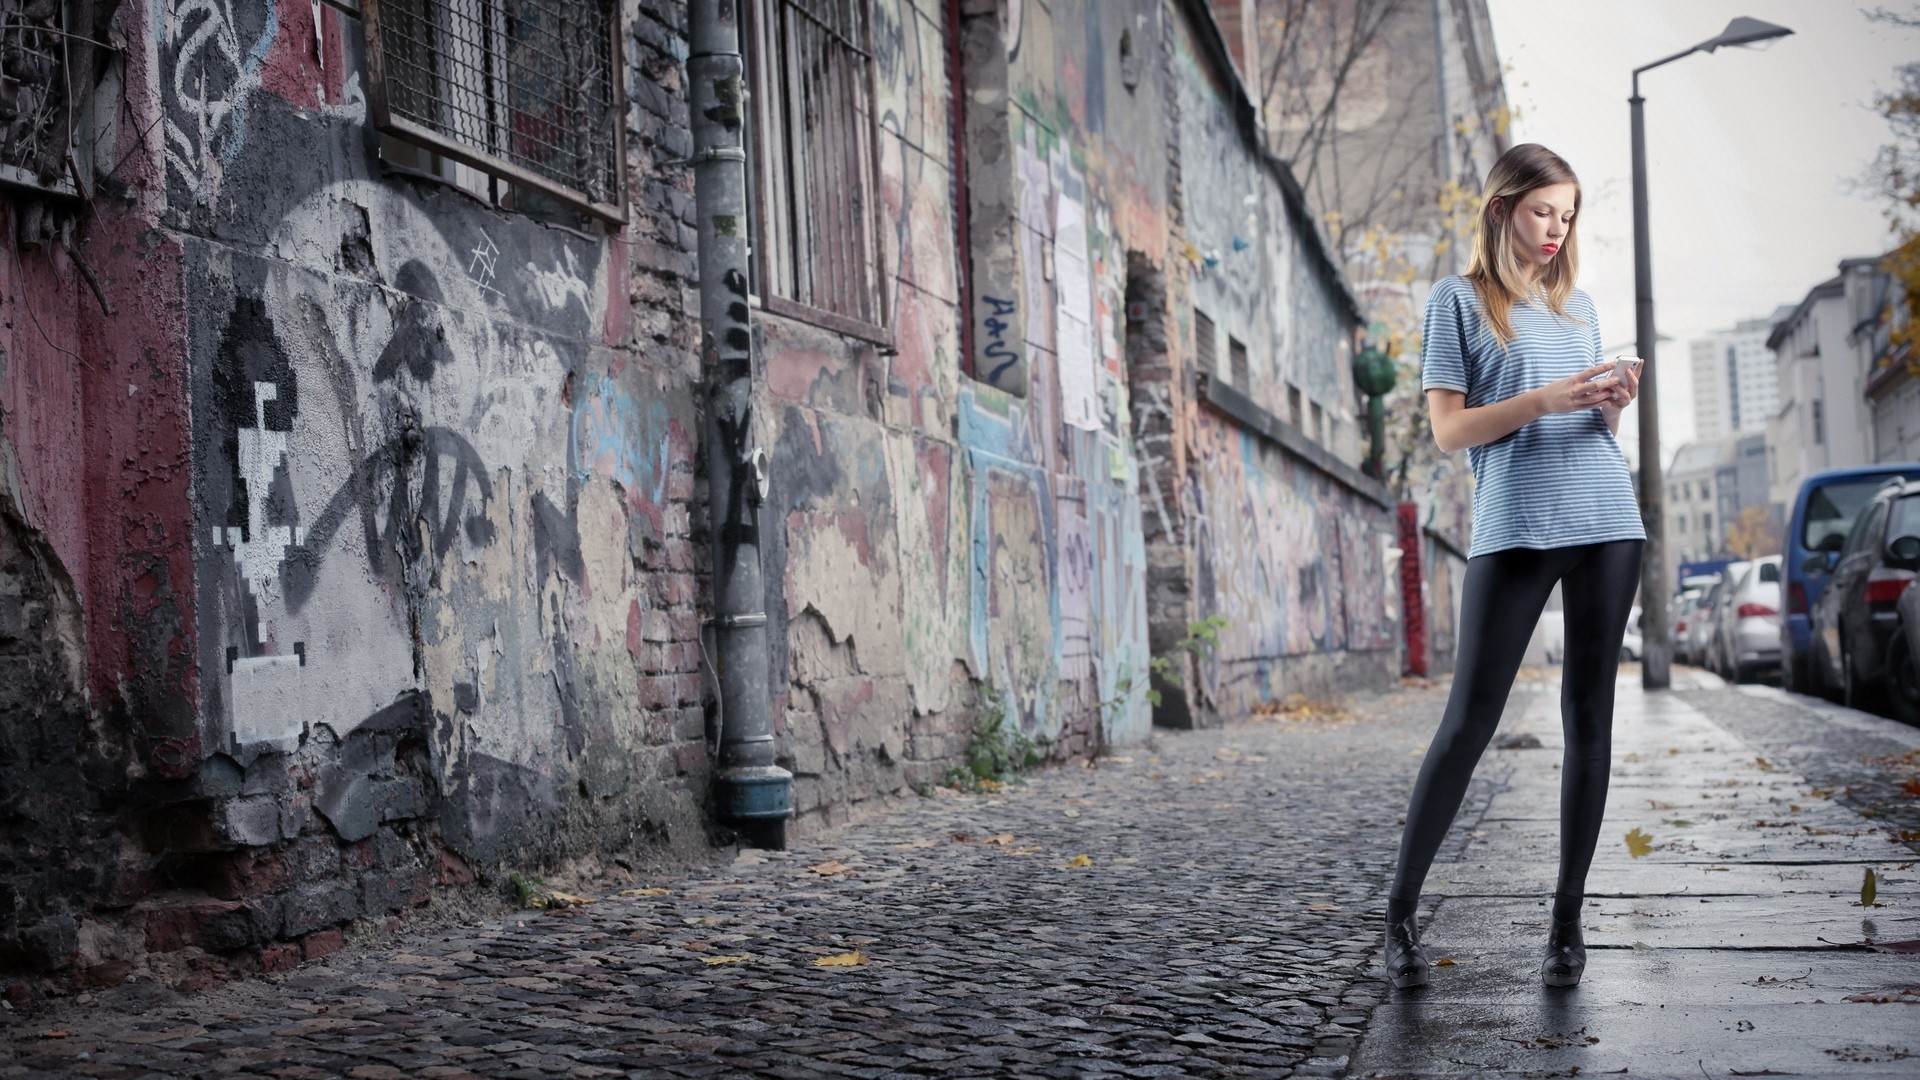 woman streets graffiti urban HD Wallpaper